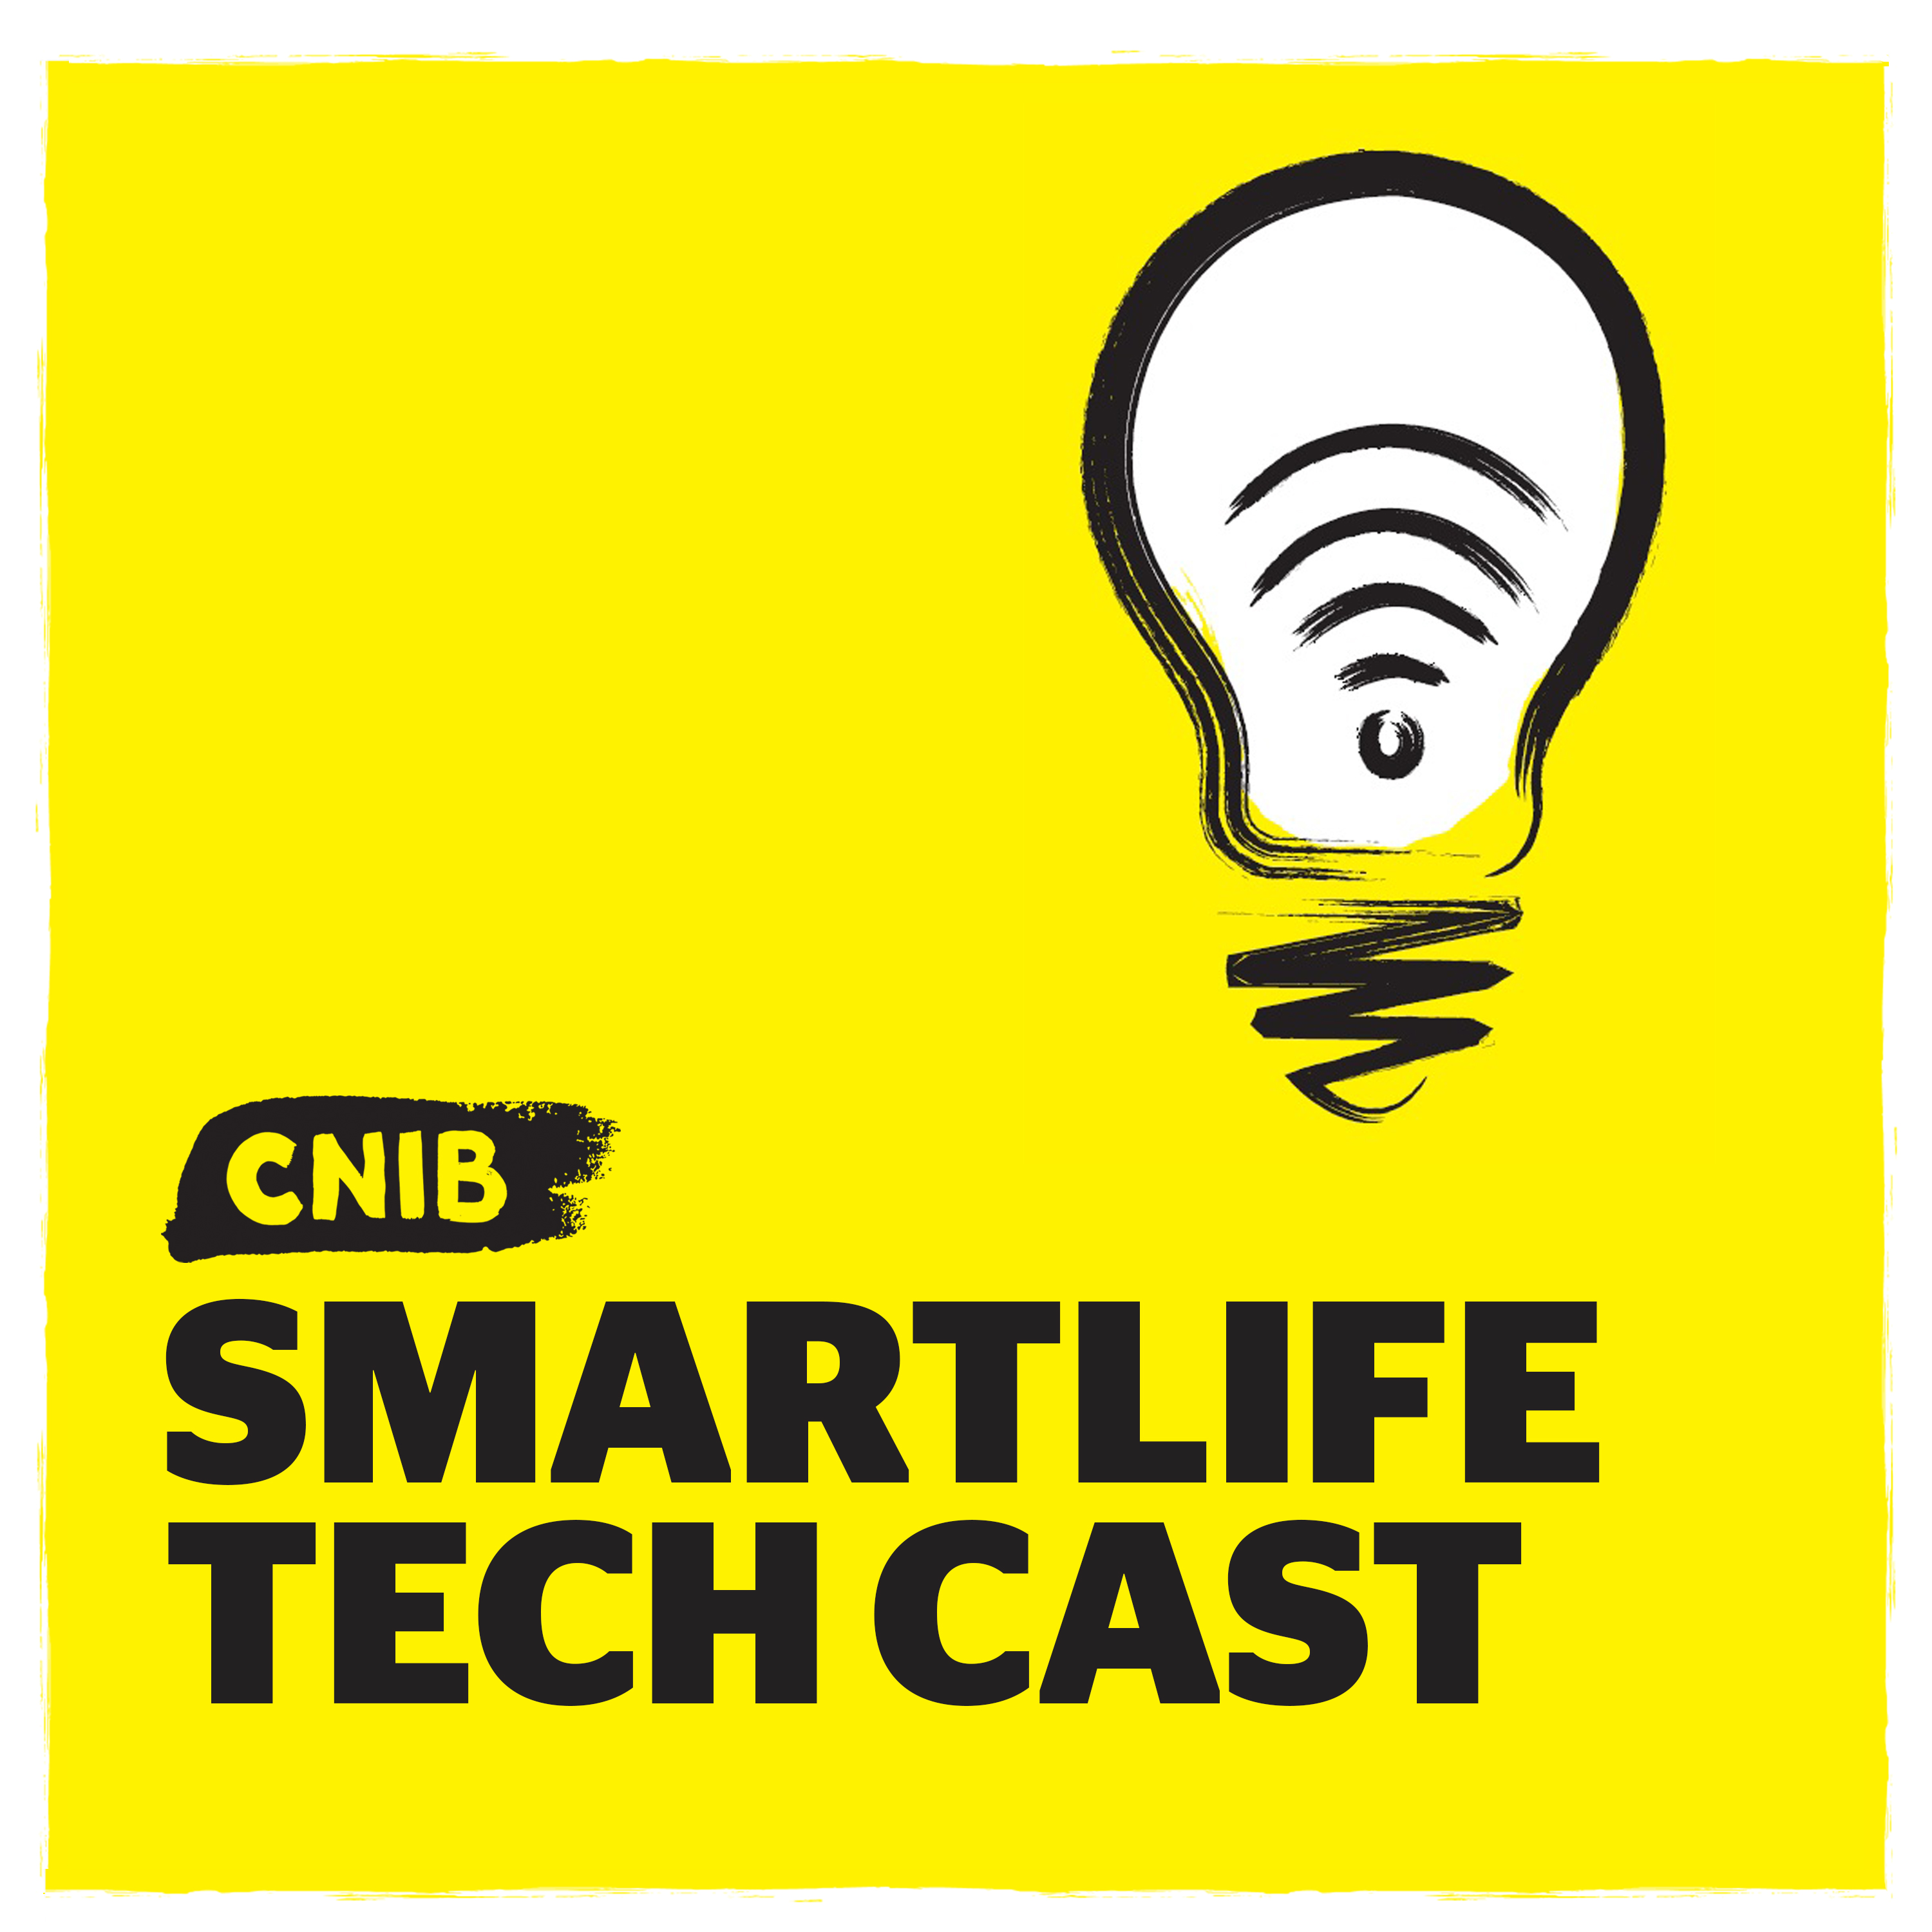 CNIB SmartLife Tech Cast logo. An illustration of a  light bulb icon on yellow.